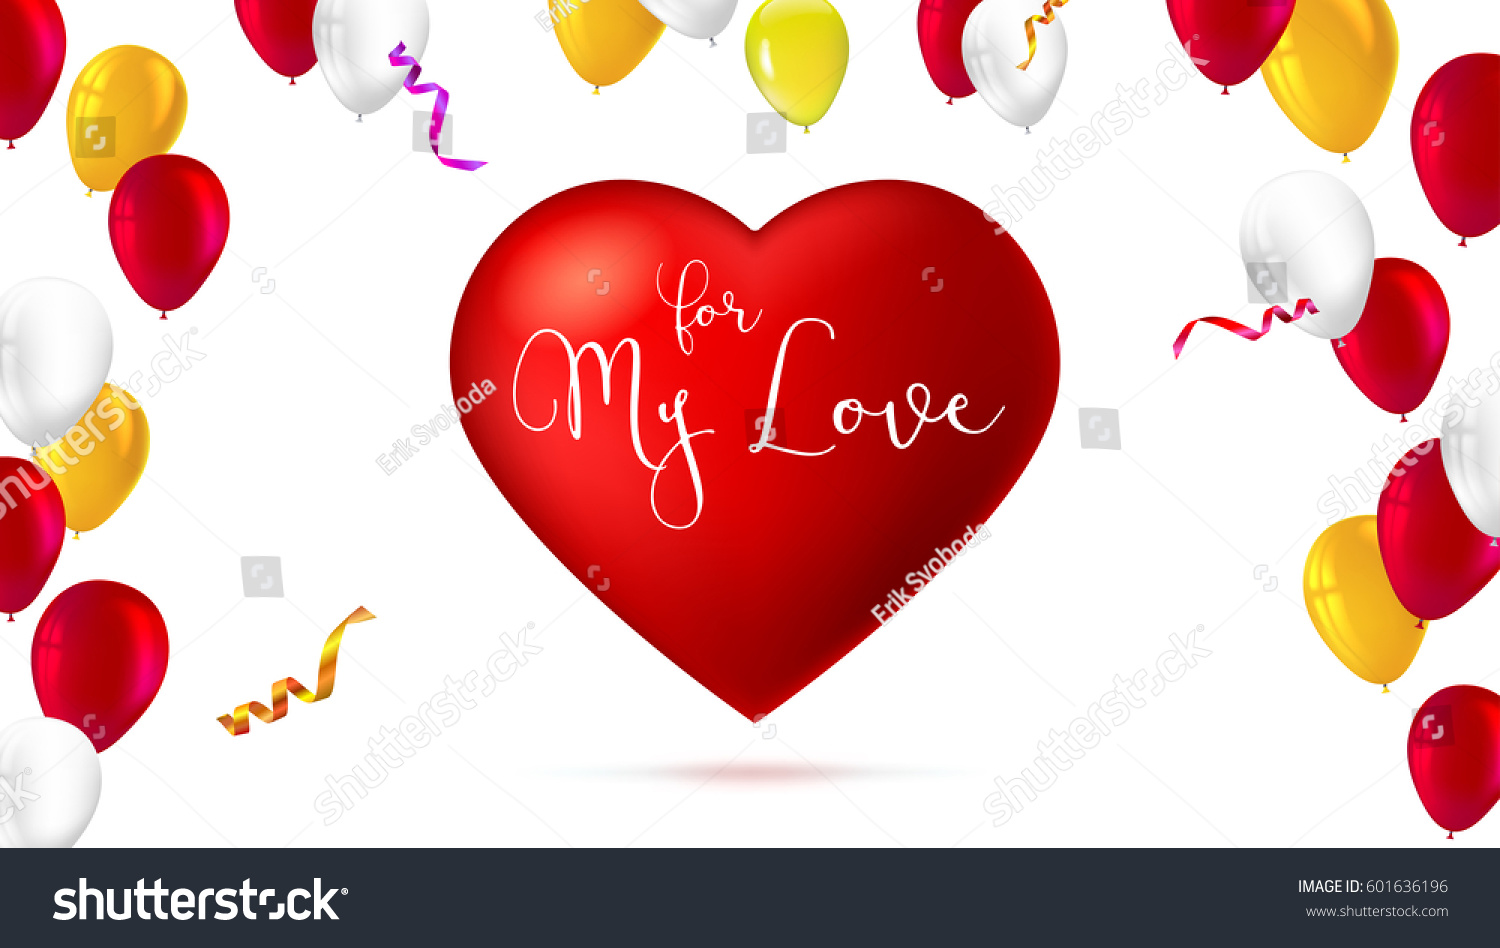 Romantic Greeting Card Big Red Heart Stock Vector 601636196